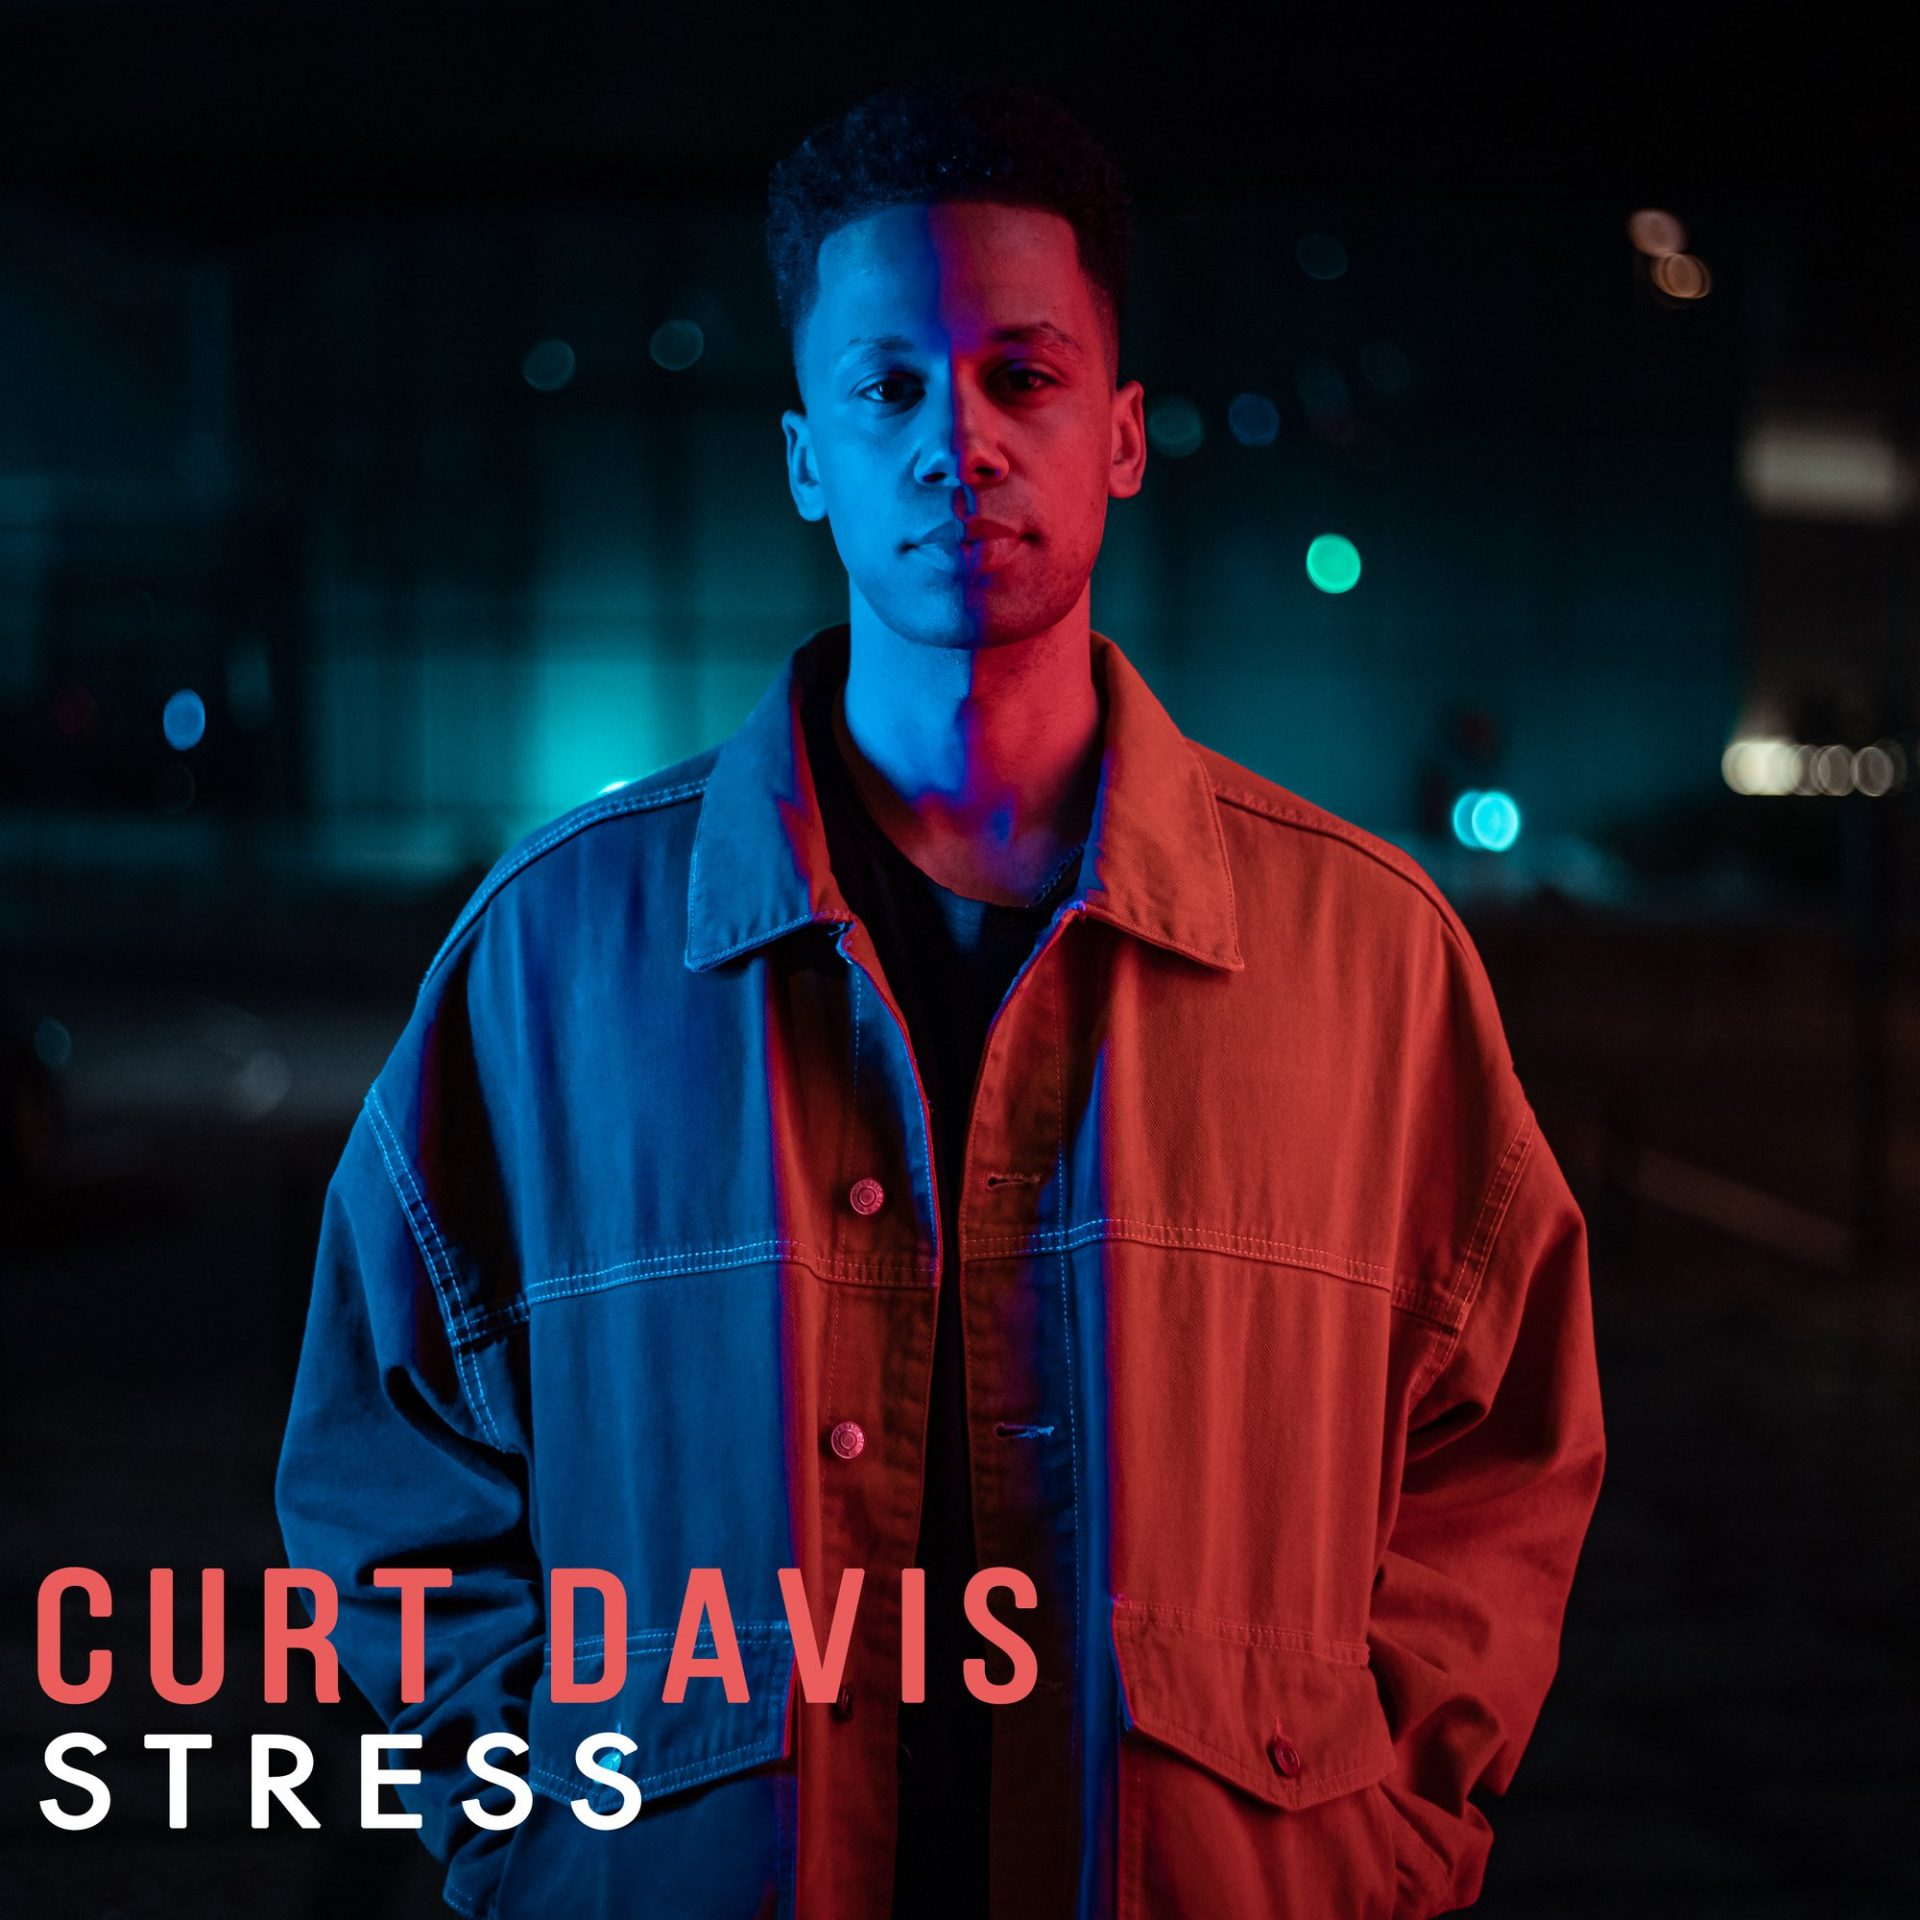 Stress is the debut single by Curt Davis